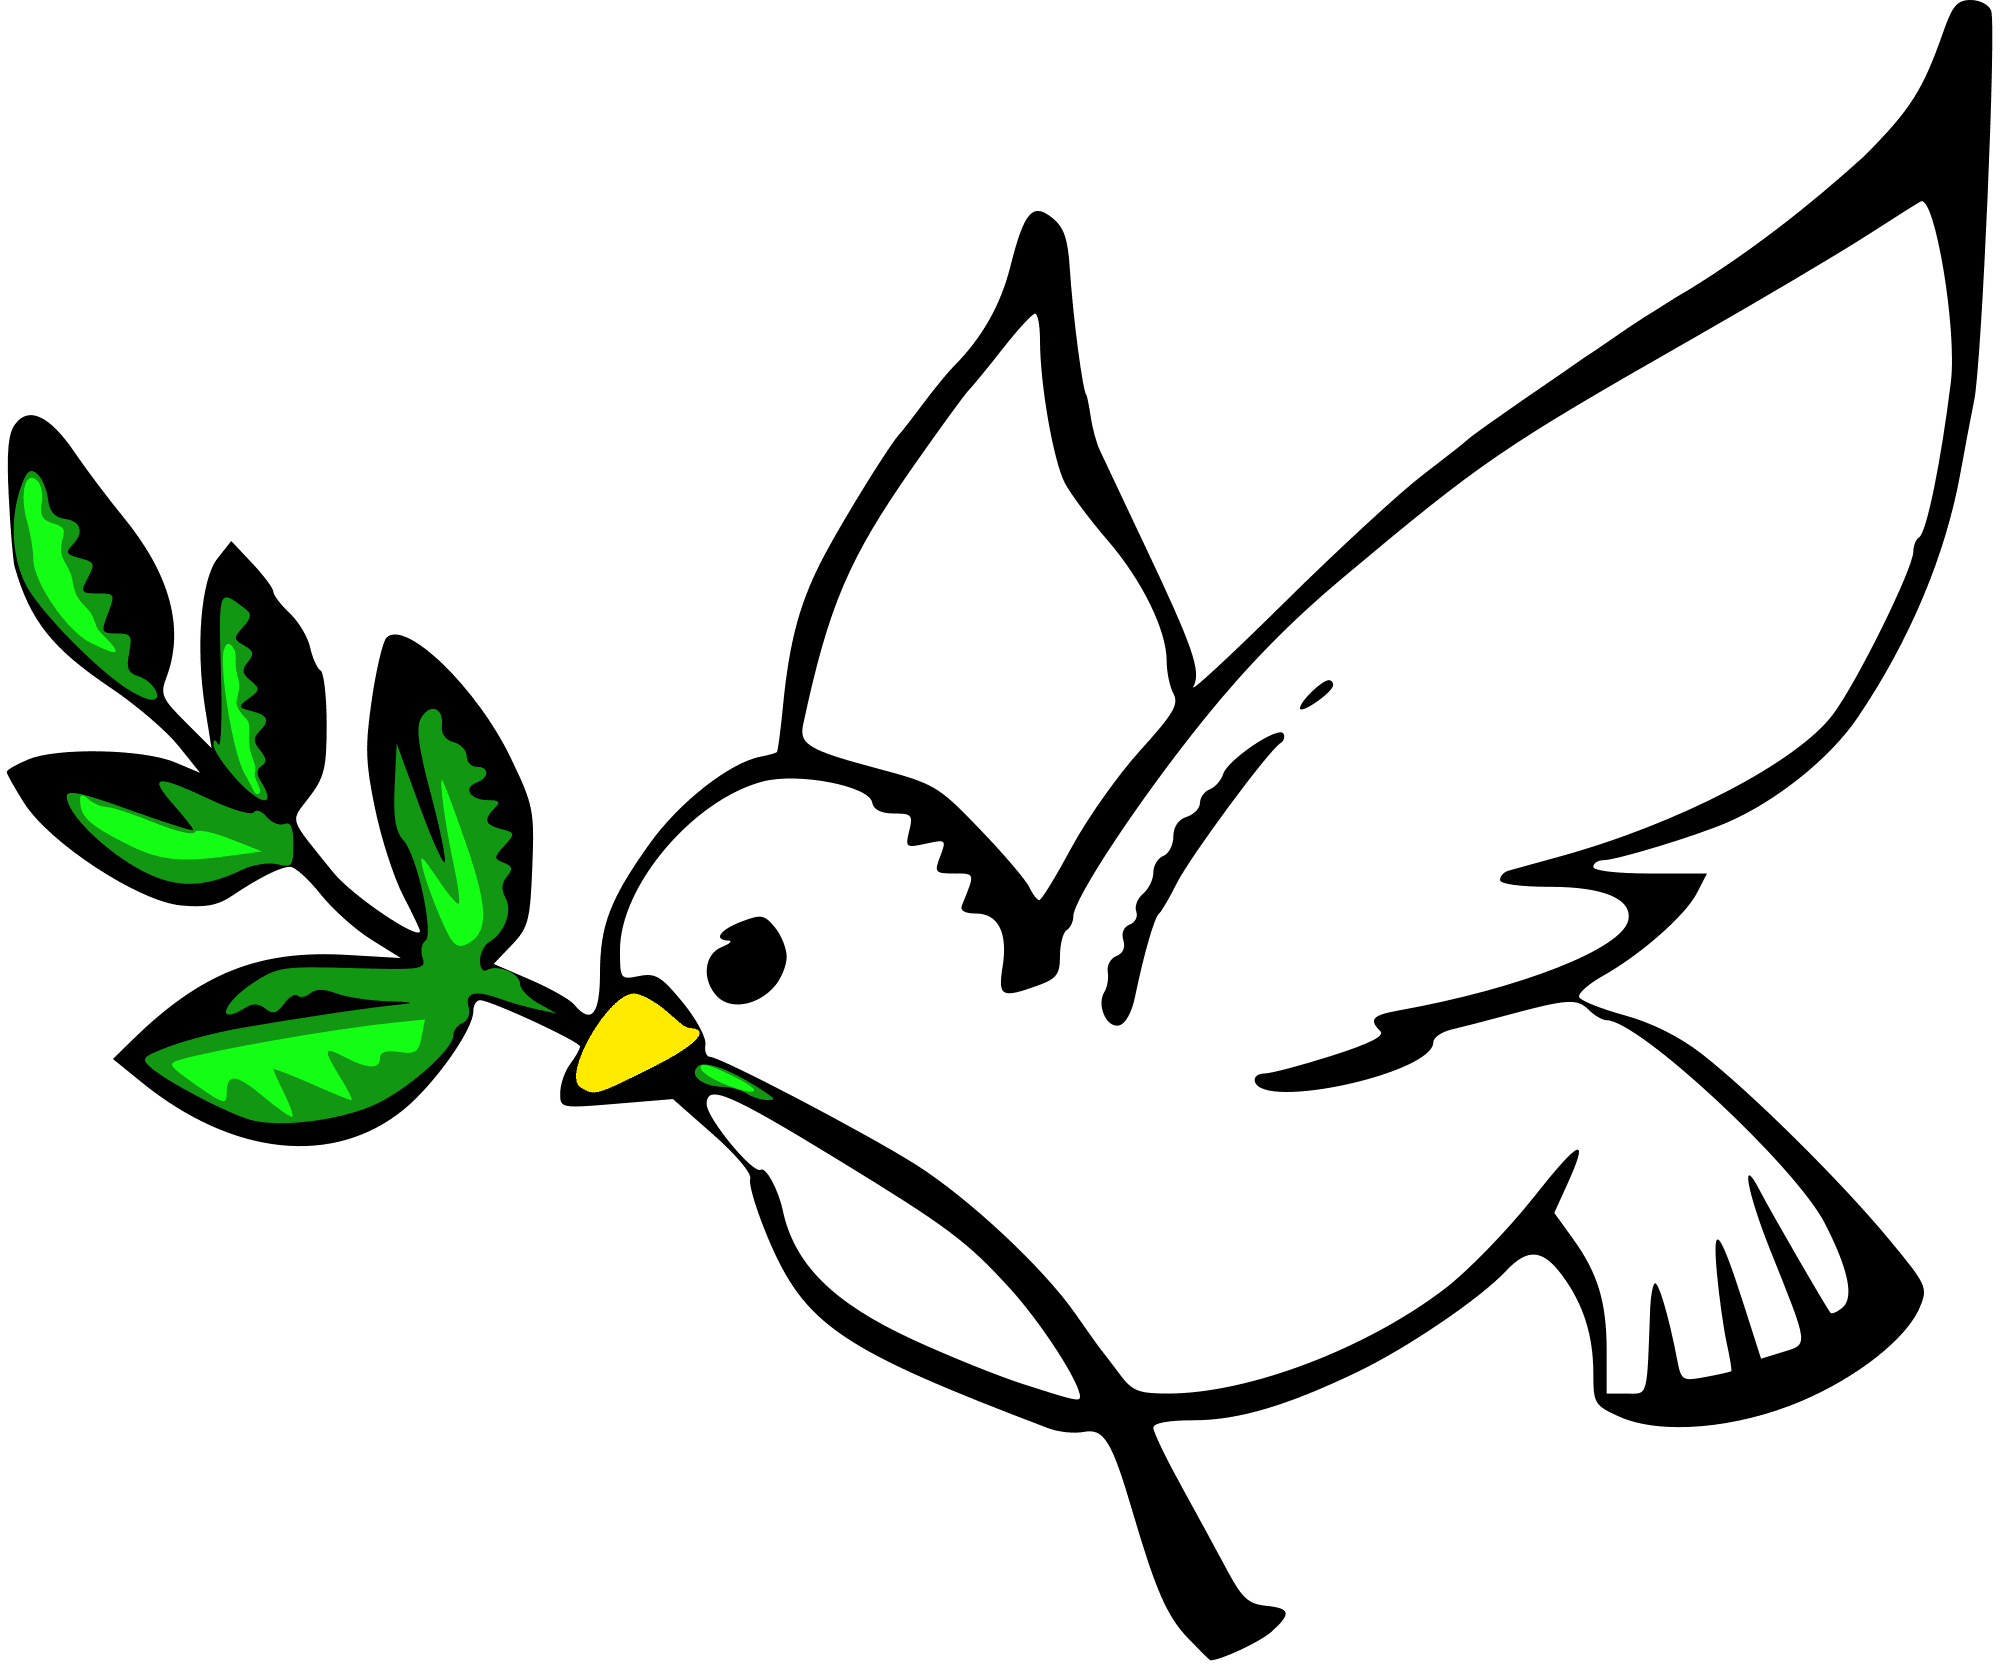 biami, brain injury, conference, hope, peace